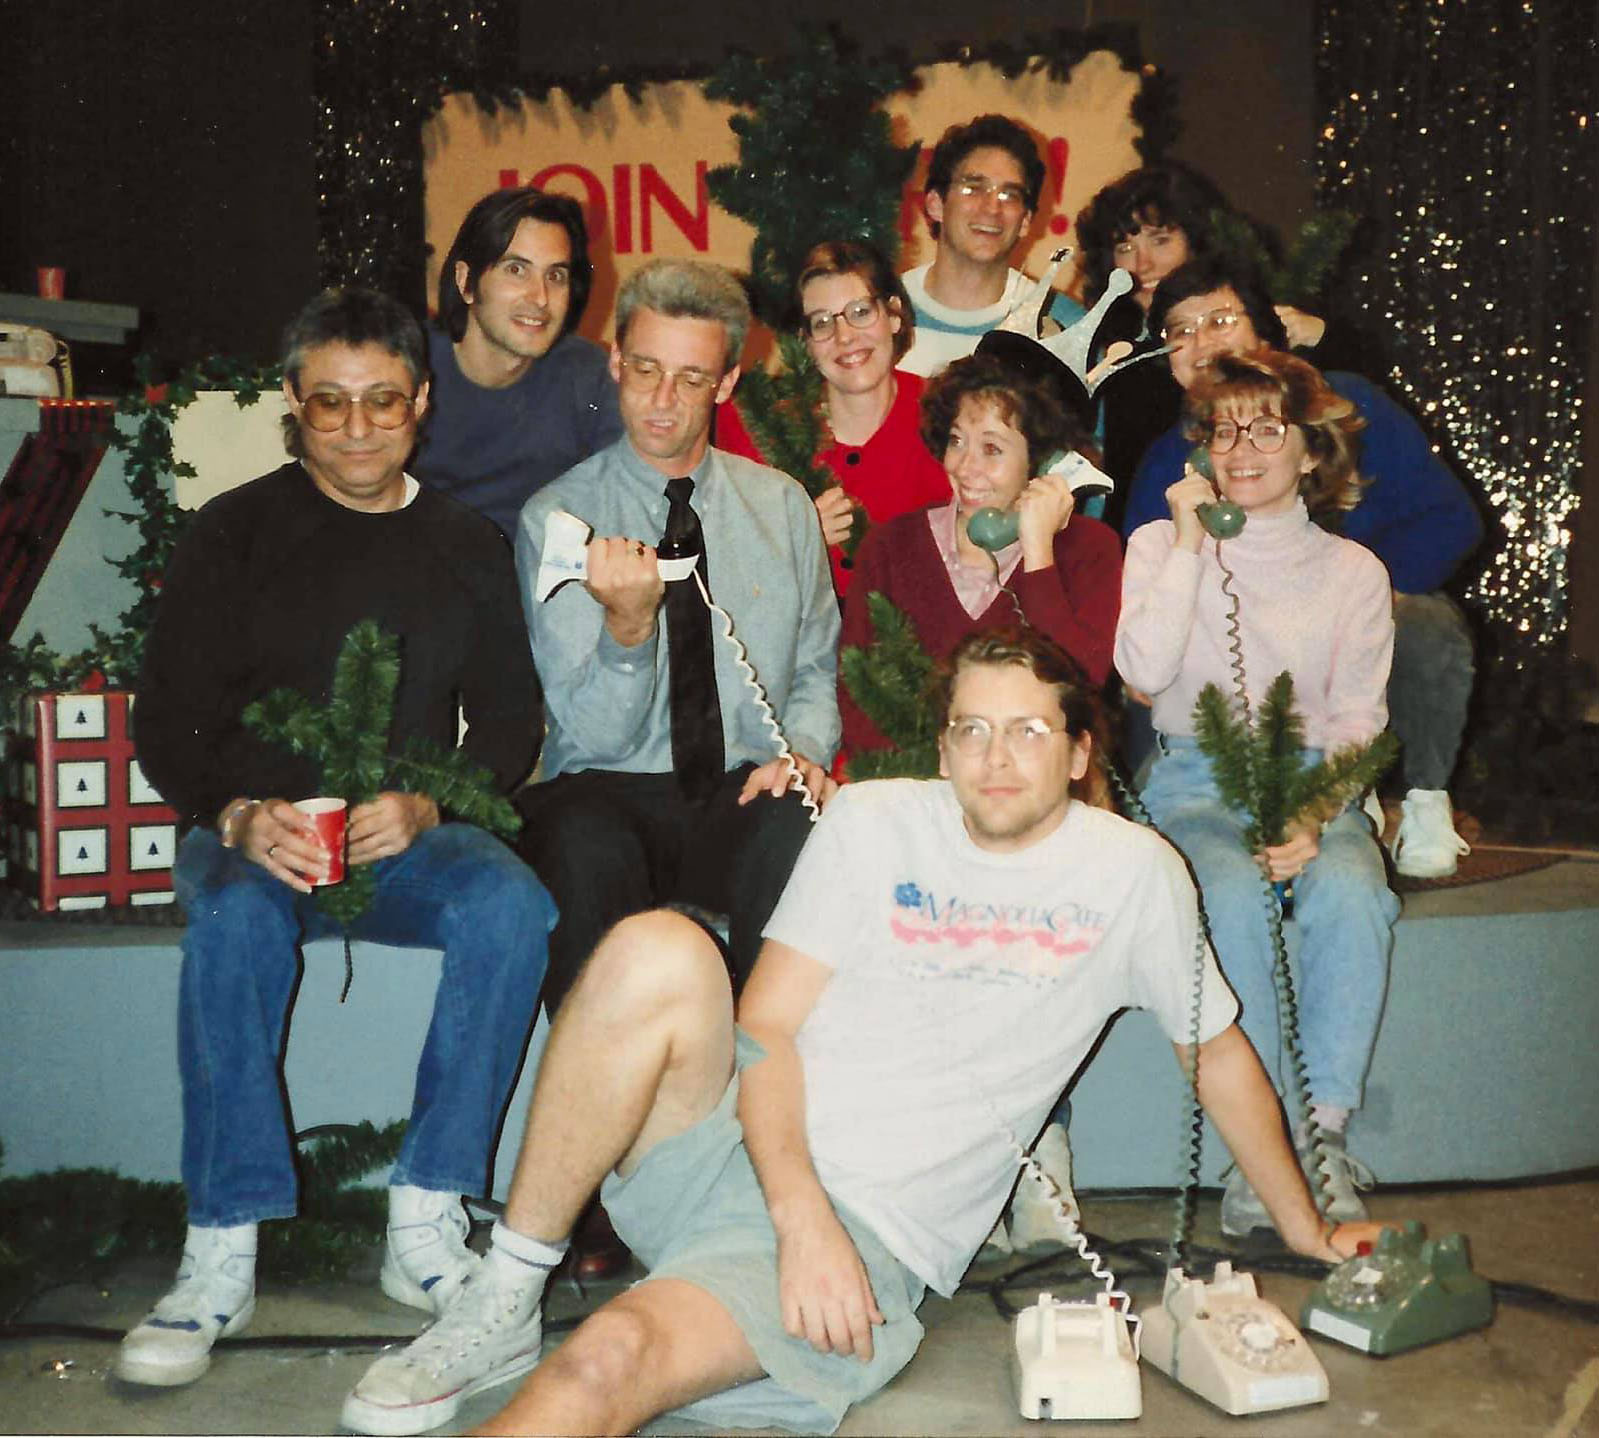 KLRU pledge picture ca. 1990s